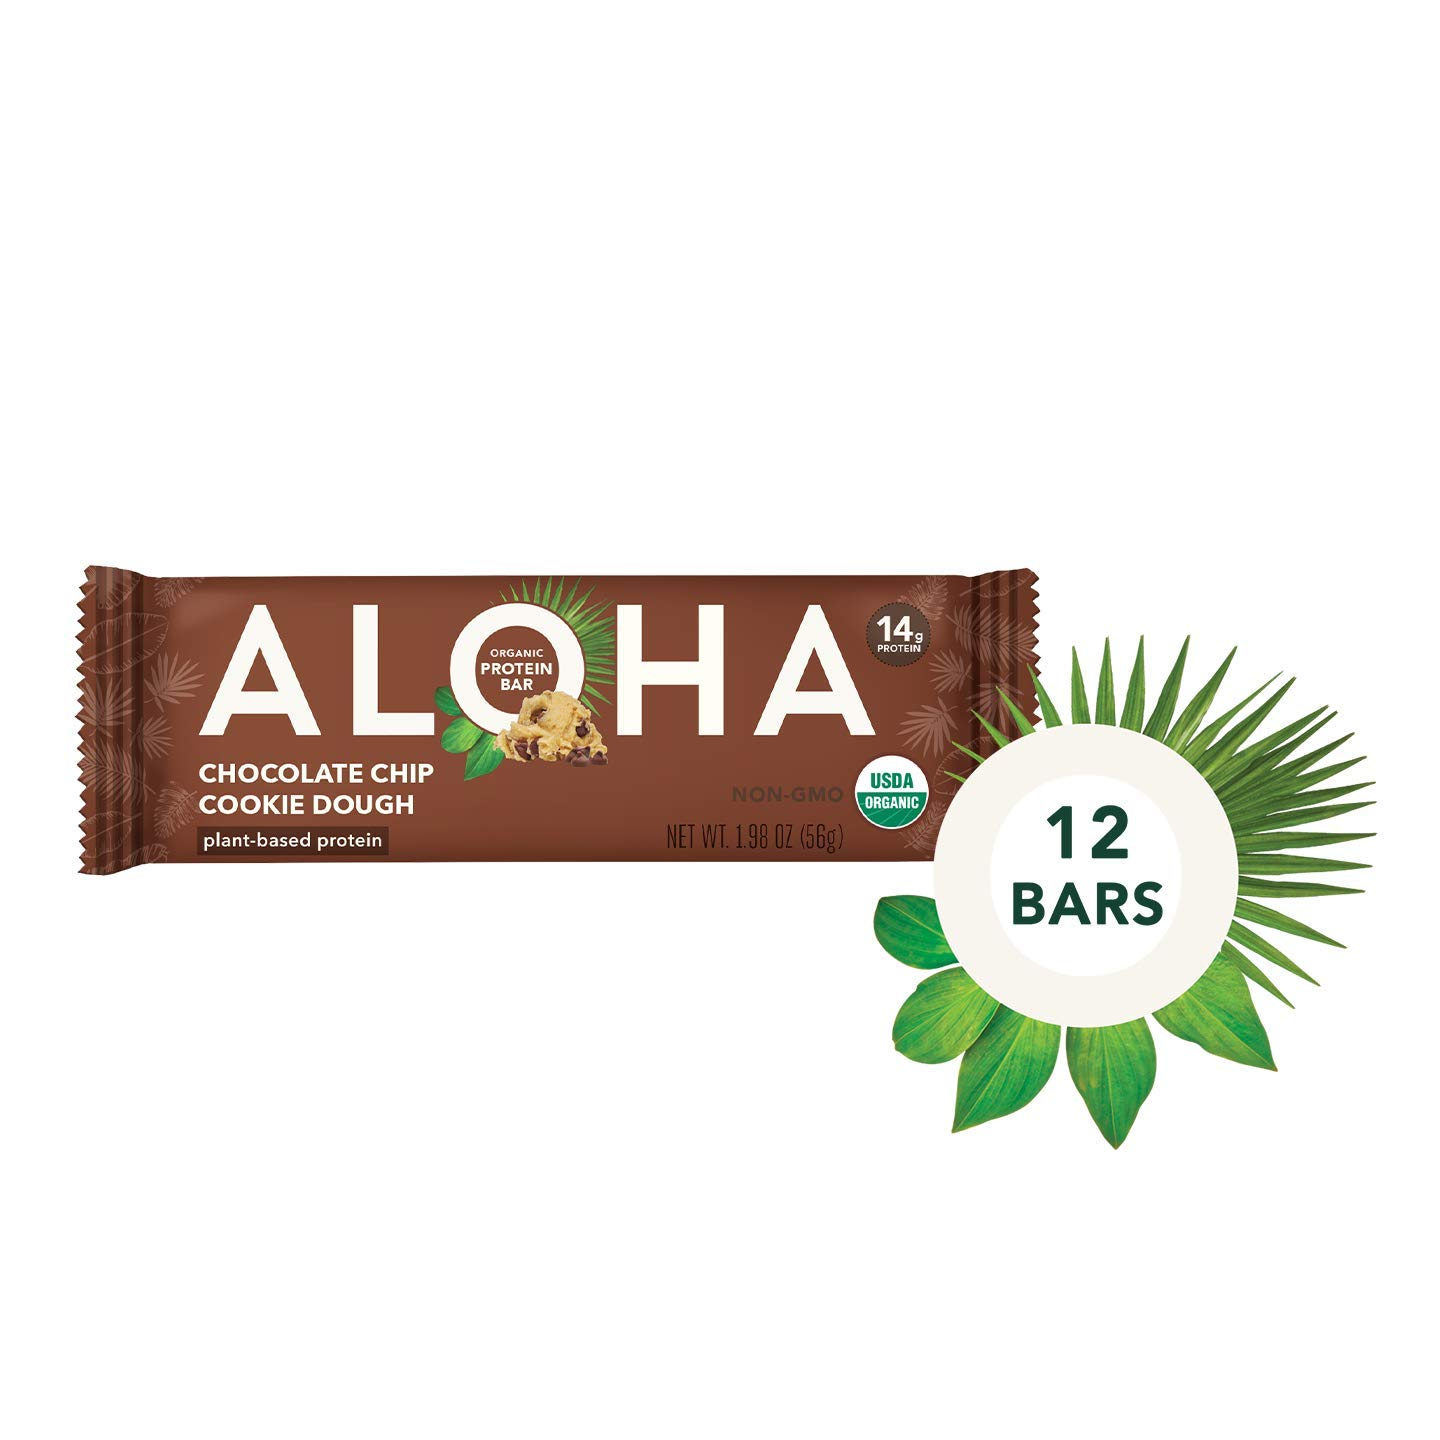 ALOHA Organic Plant Based Protein Bars |Chocolate Chip Cookie Dough | 12 Count, 1.9oz Bars | Vegan, Low Sugar, Gluten Free, Paleo, Low Carb, Non-GMO, Stevia Free, Soy Free by ALOHA